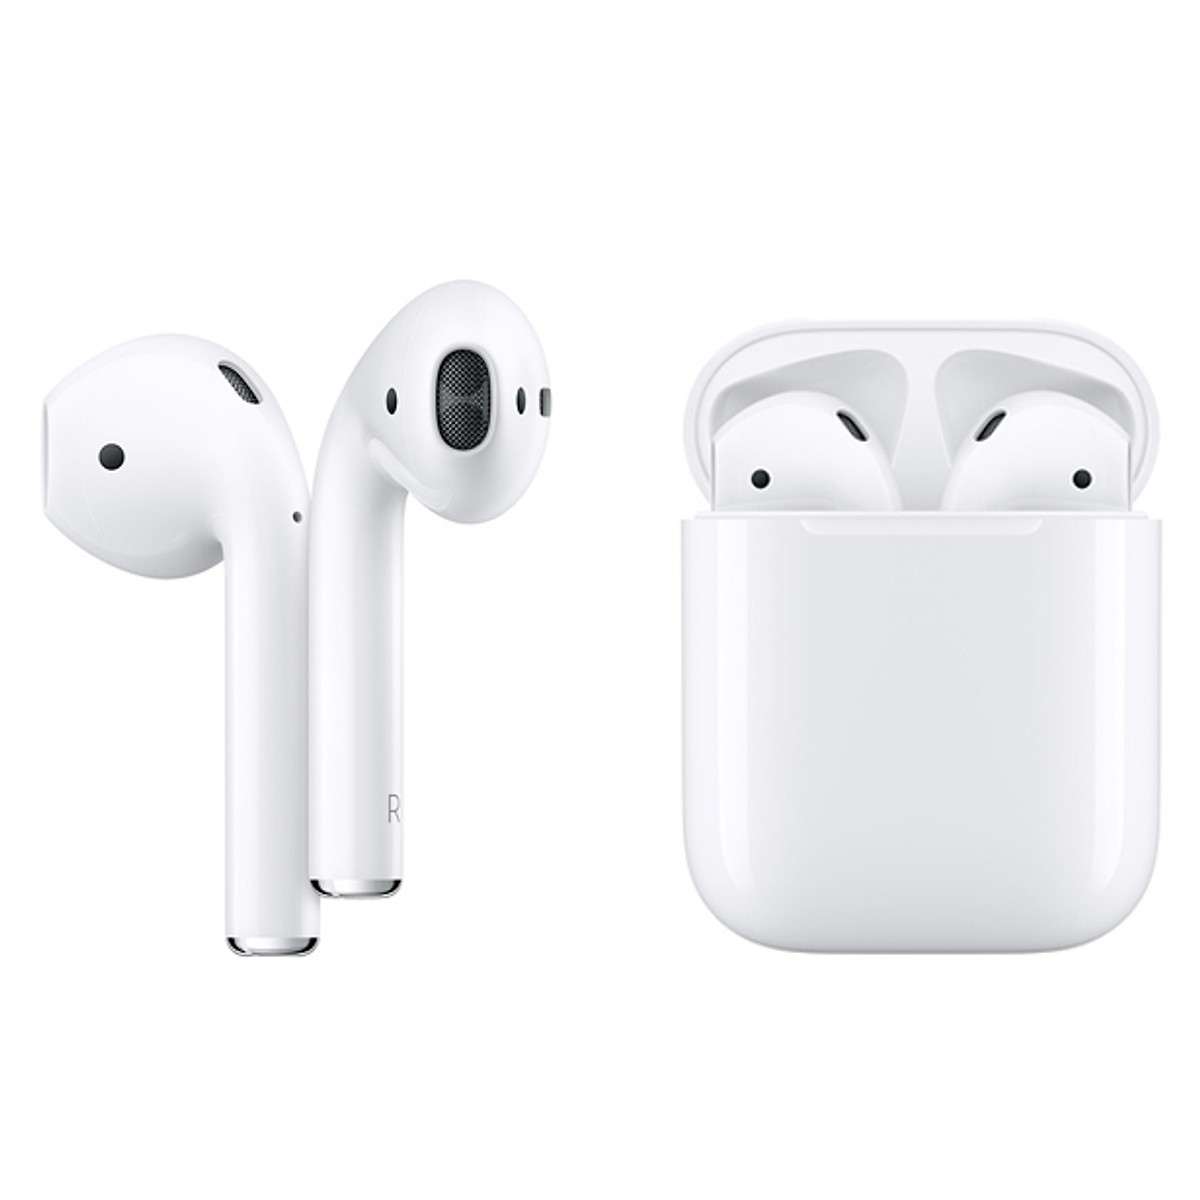 tai-nghe-bluetooth-apple-airpods-2-true-wireless-mv7n2